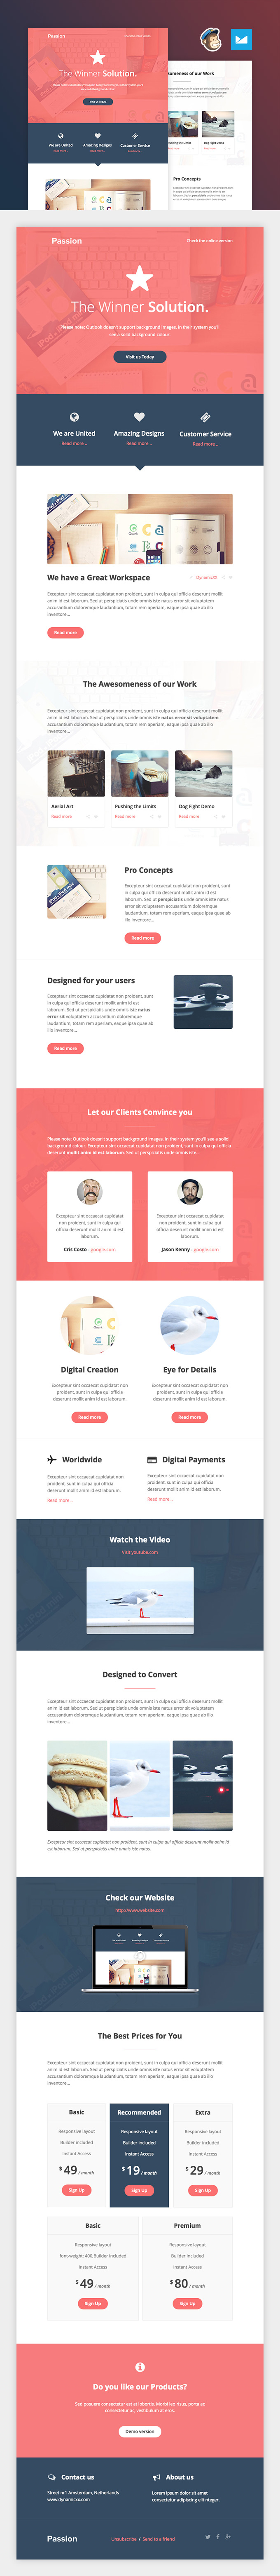 20+ fresh free html, css, psd templates: november 2015 edition.